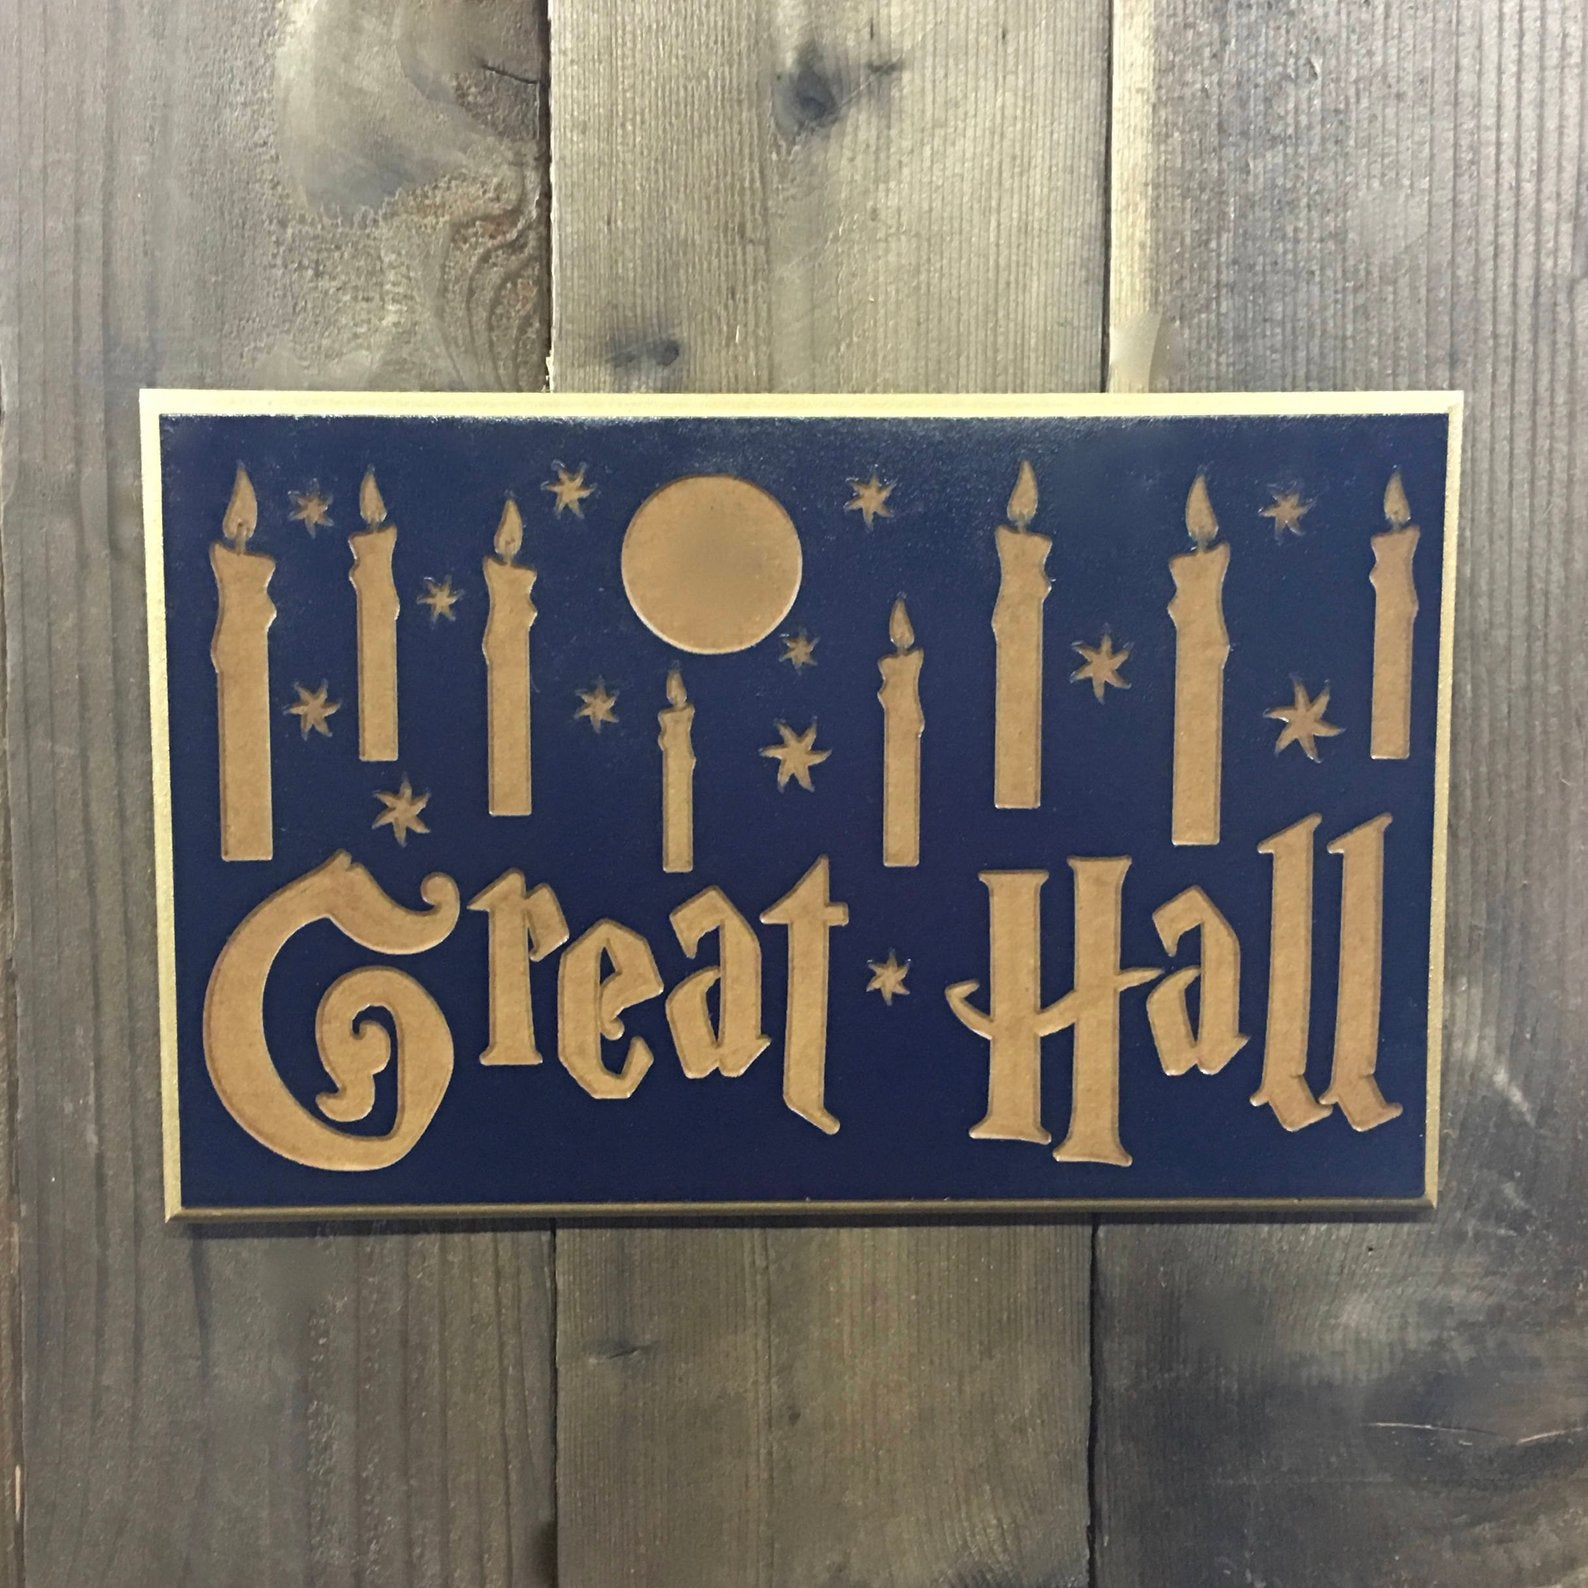 Great hall Sign - MDF Carved Wood